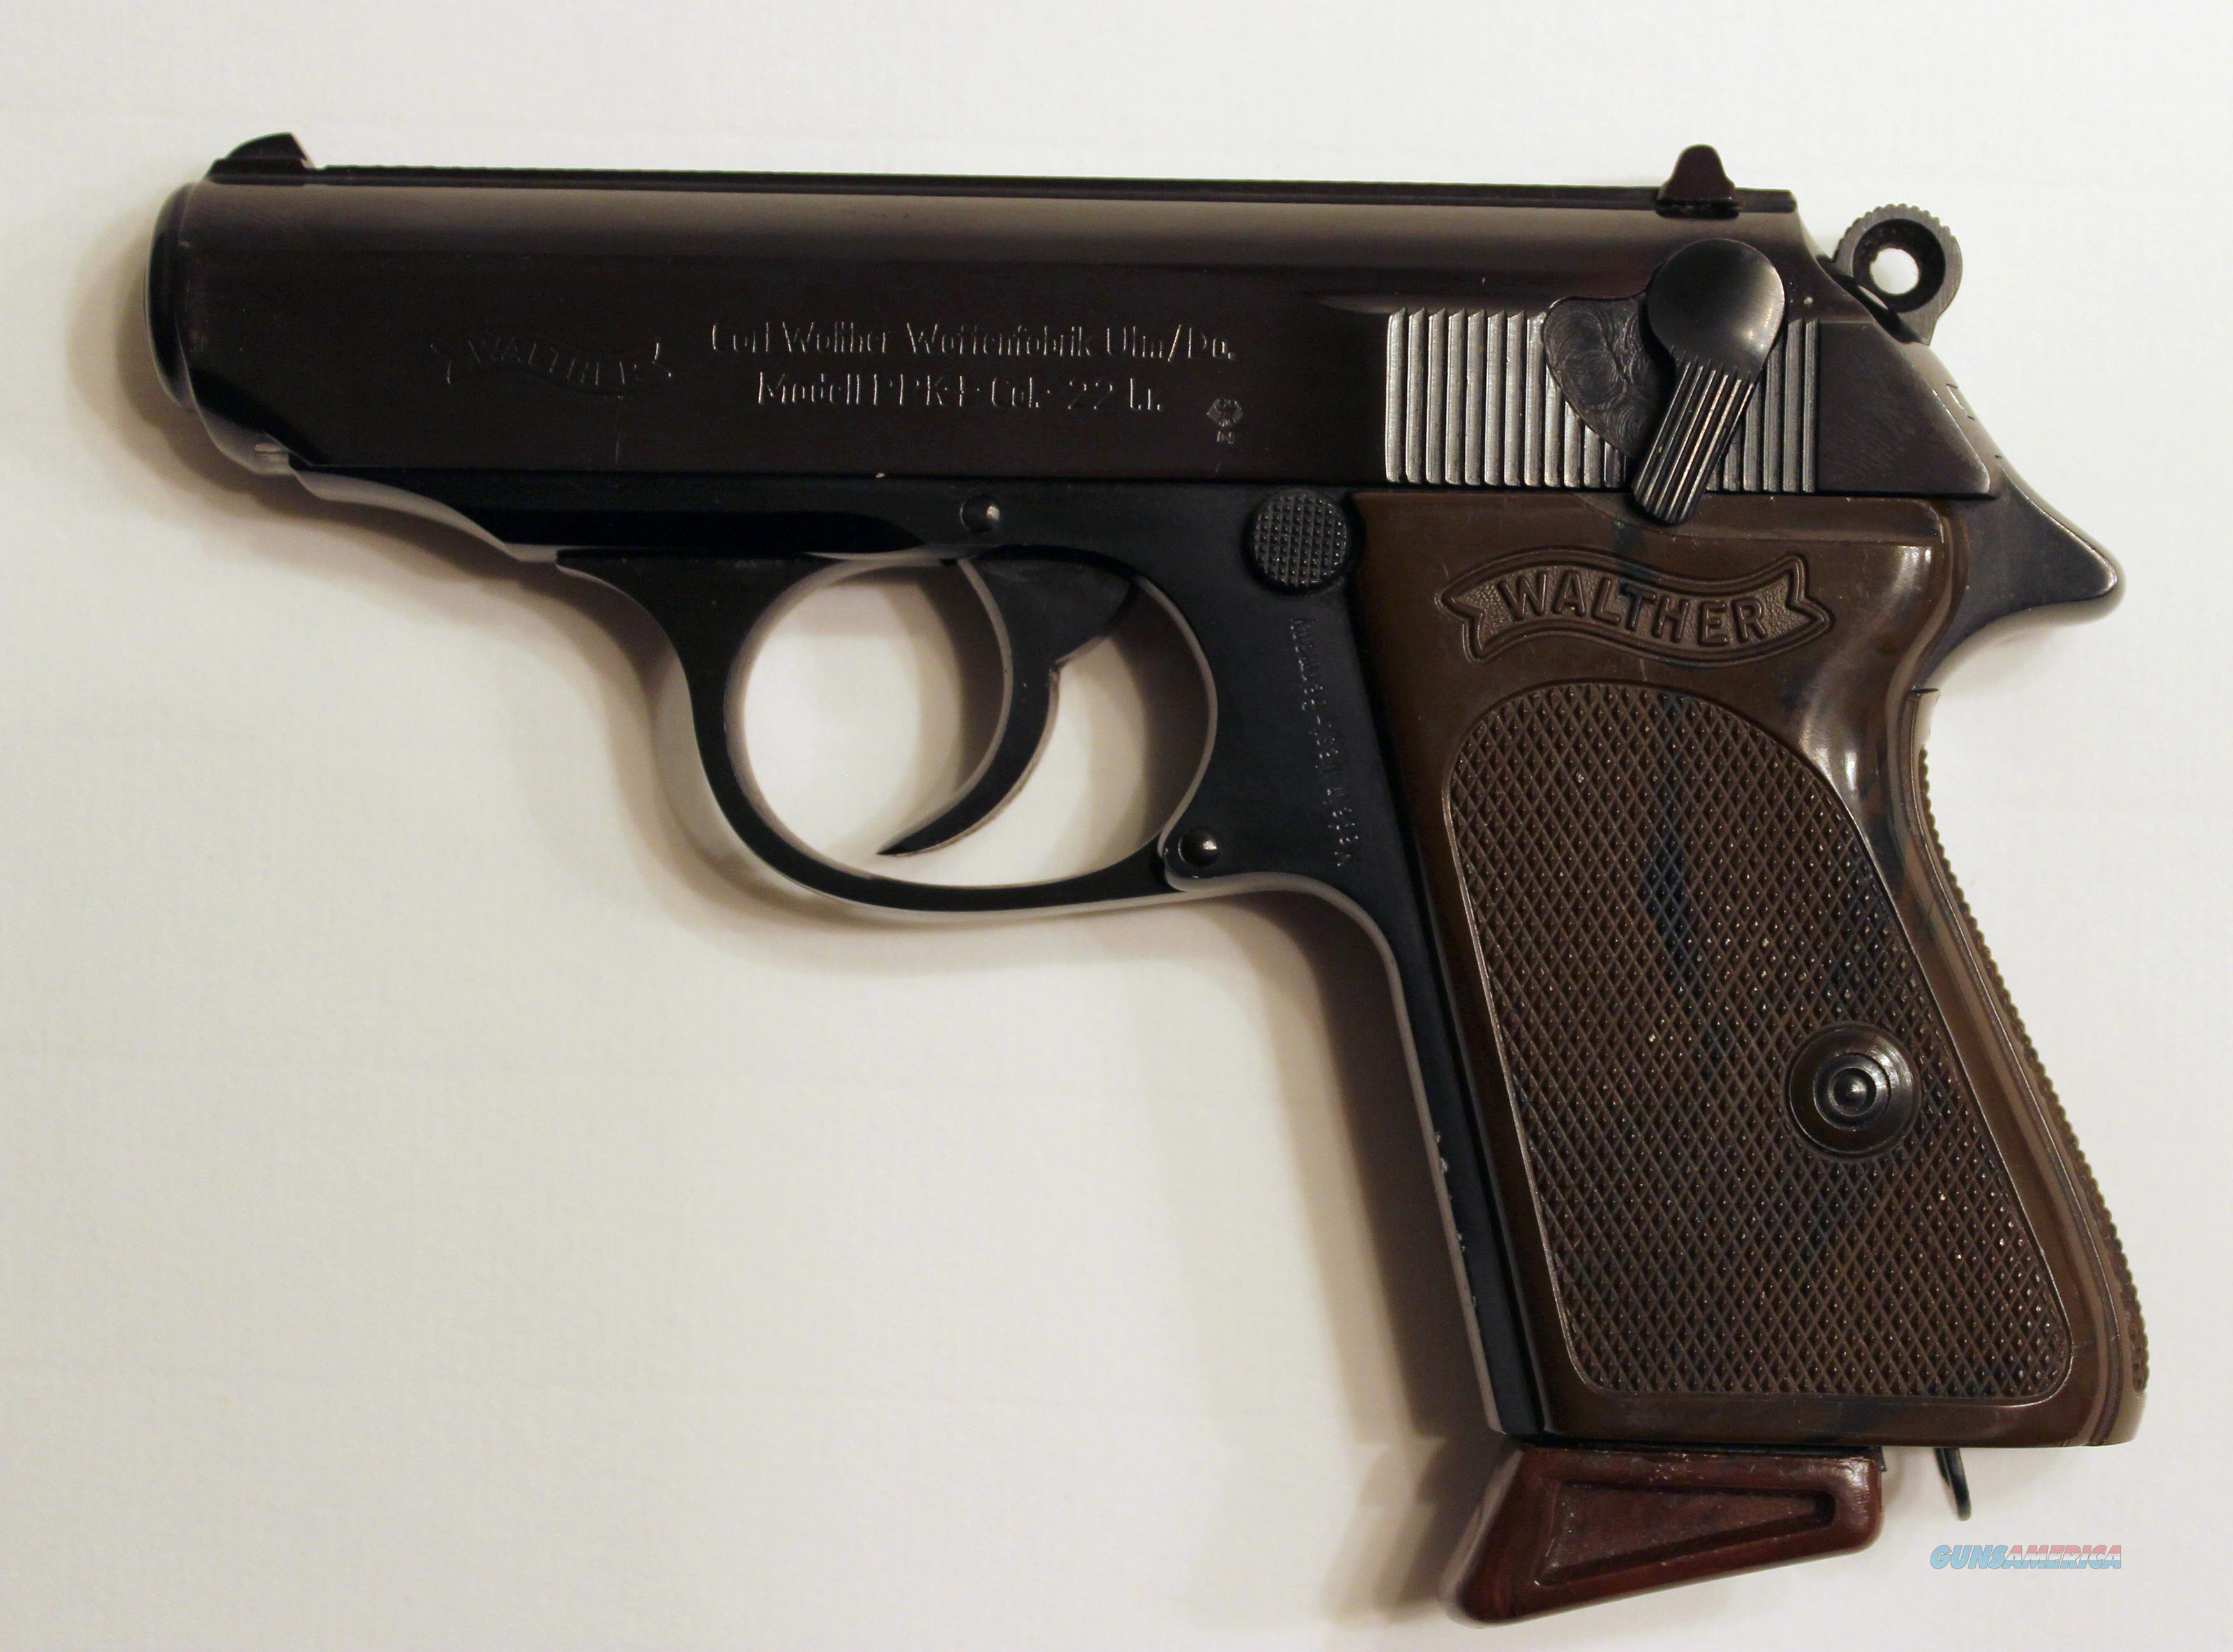 West-German Walther PPK .22LR Manufactured 1967  Guns > Pistols > Walther Pistols > Post WWII > PPK Series